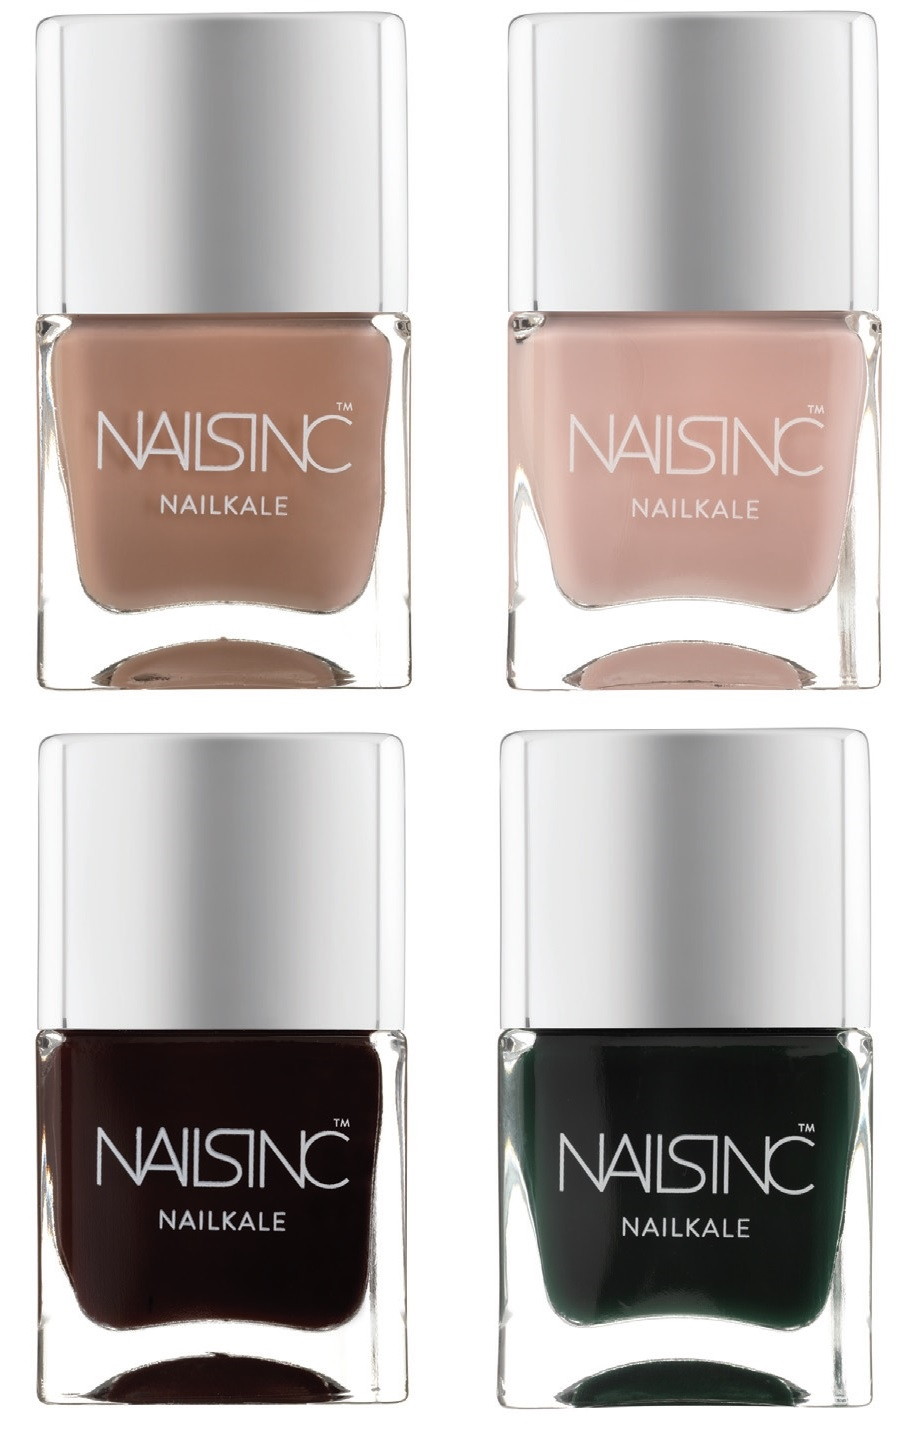 Nails Inc. Newness | My Beauty Notes